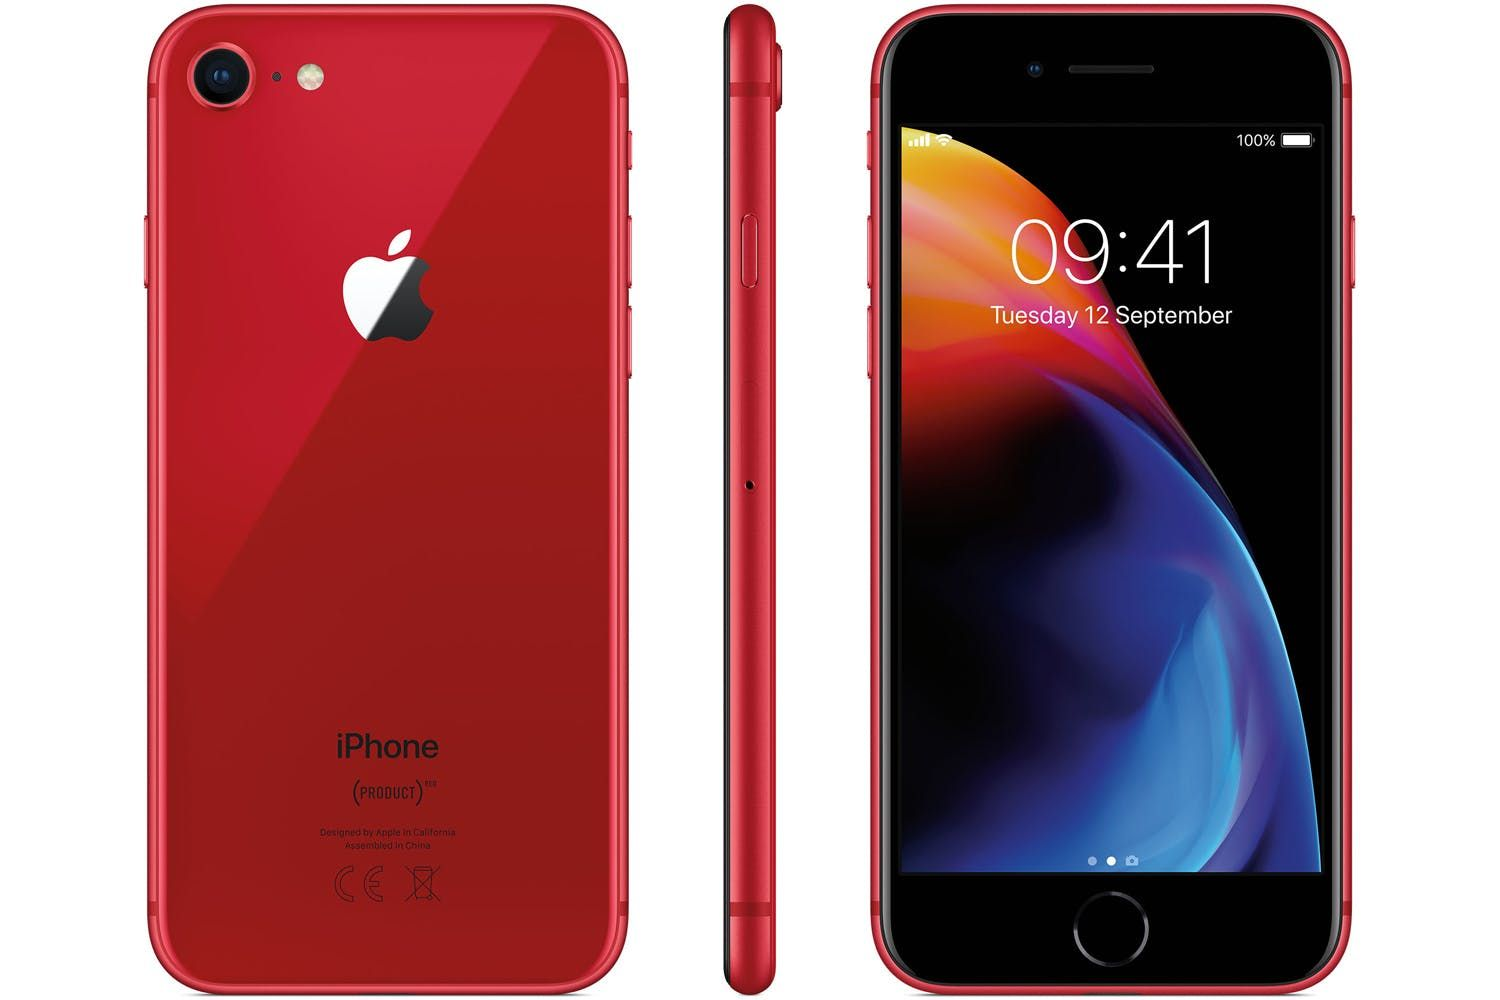 Product Red Iphone 8 Plus Pink Sands Apple Silicon Case We Finally Got The Product Red Iphone 8 Plus Let S Do A Quick Unbox Iphone Iphone Cases Apple Cases